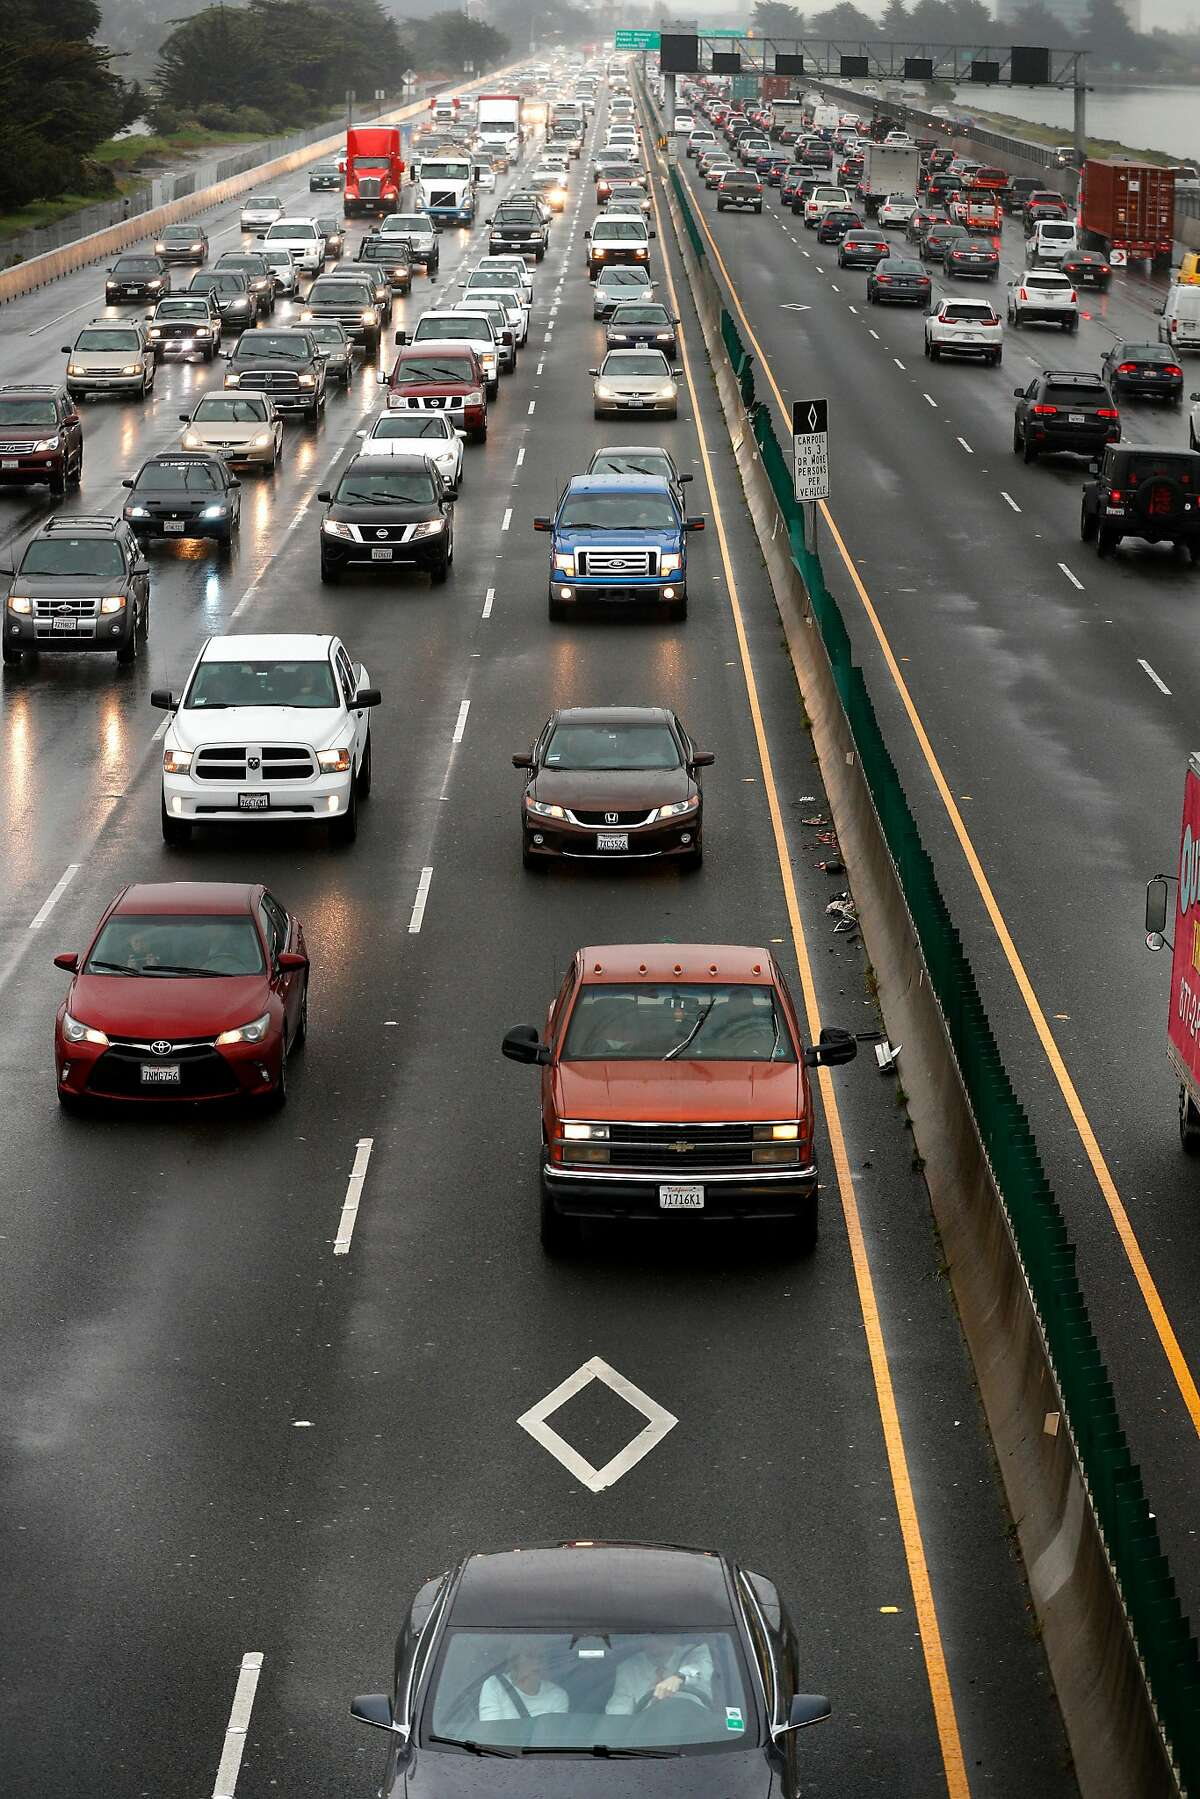 Traffic in the car pool lanes along the interstate 80 freeway in Berkeley, Calif., on Tues. March 20, 2018.